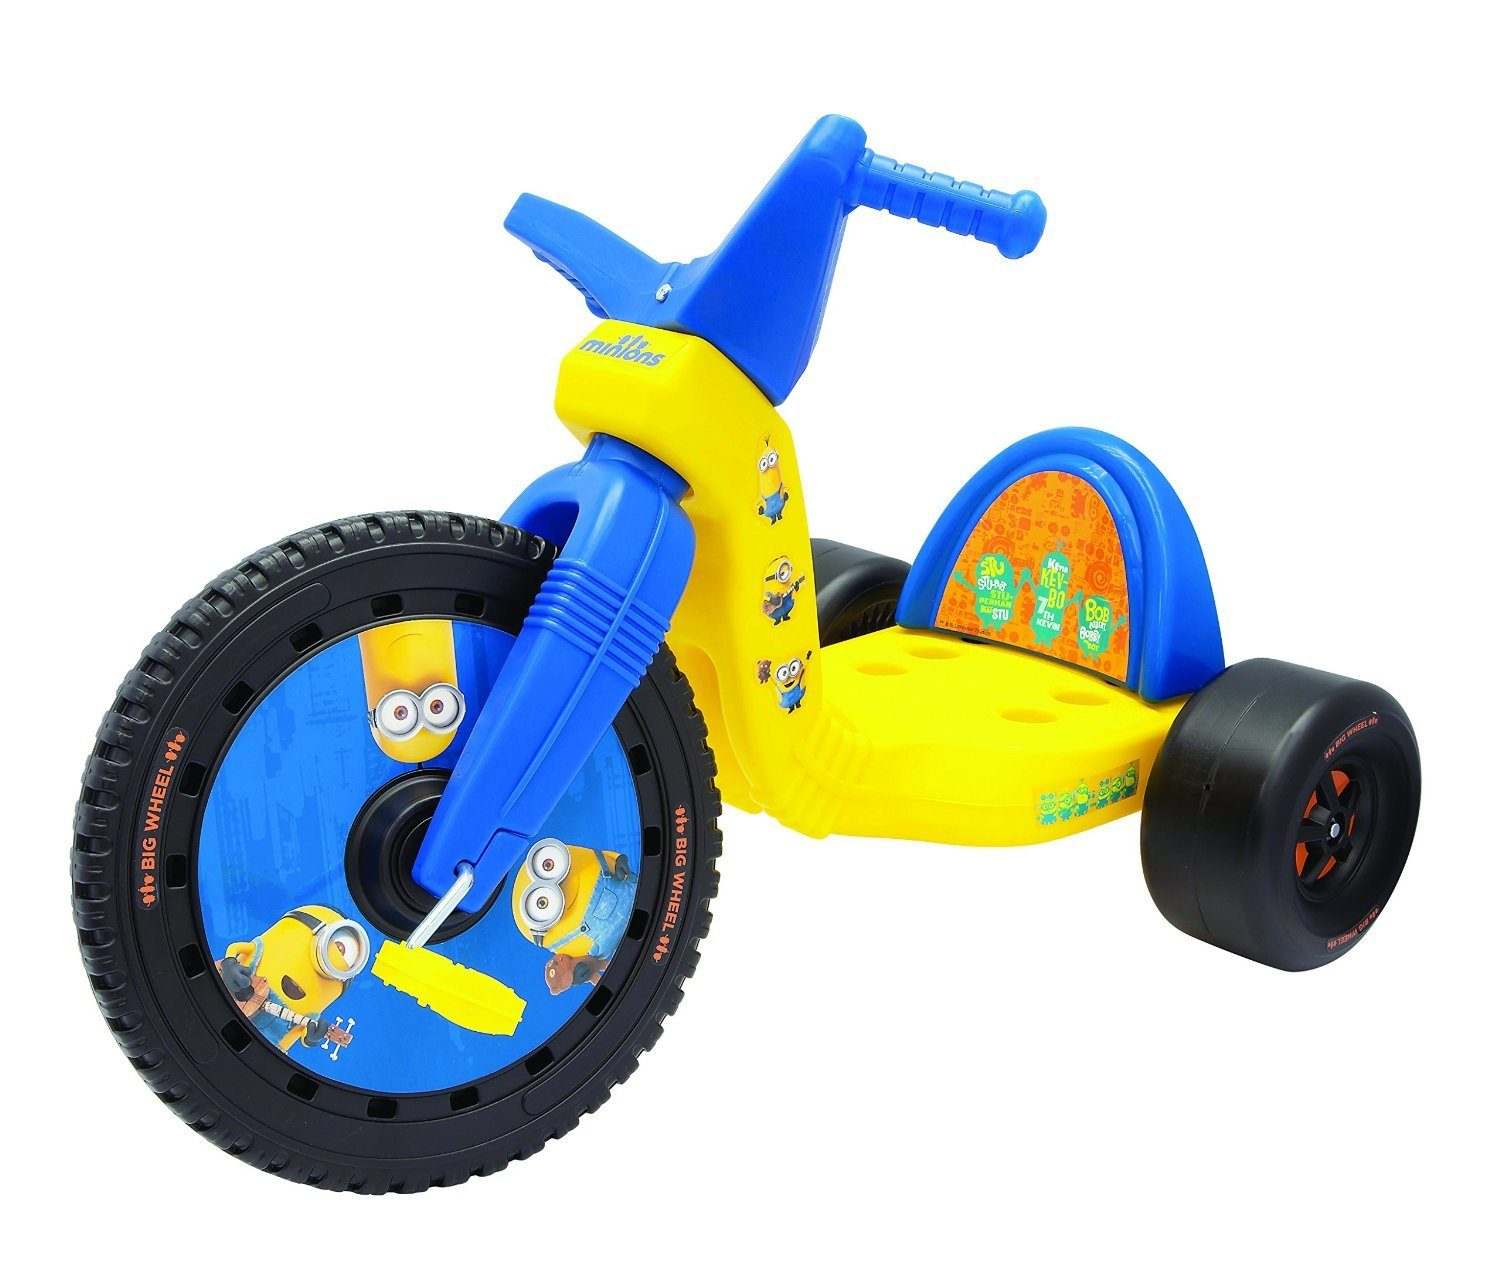 "Minions Big Wheel, 16"" Only $39.97 With FREE Shipping (Reg. $59.99)!"